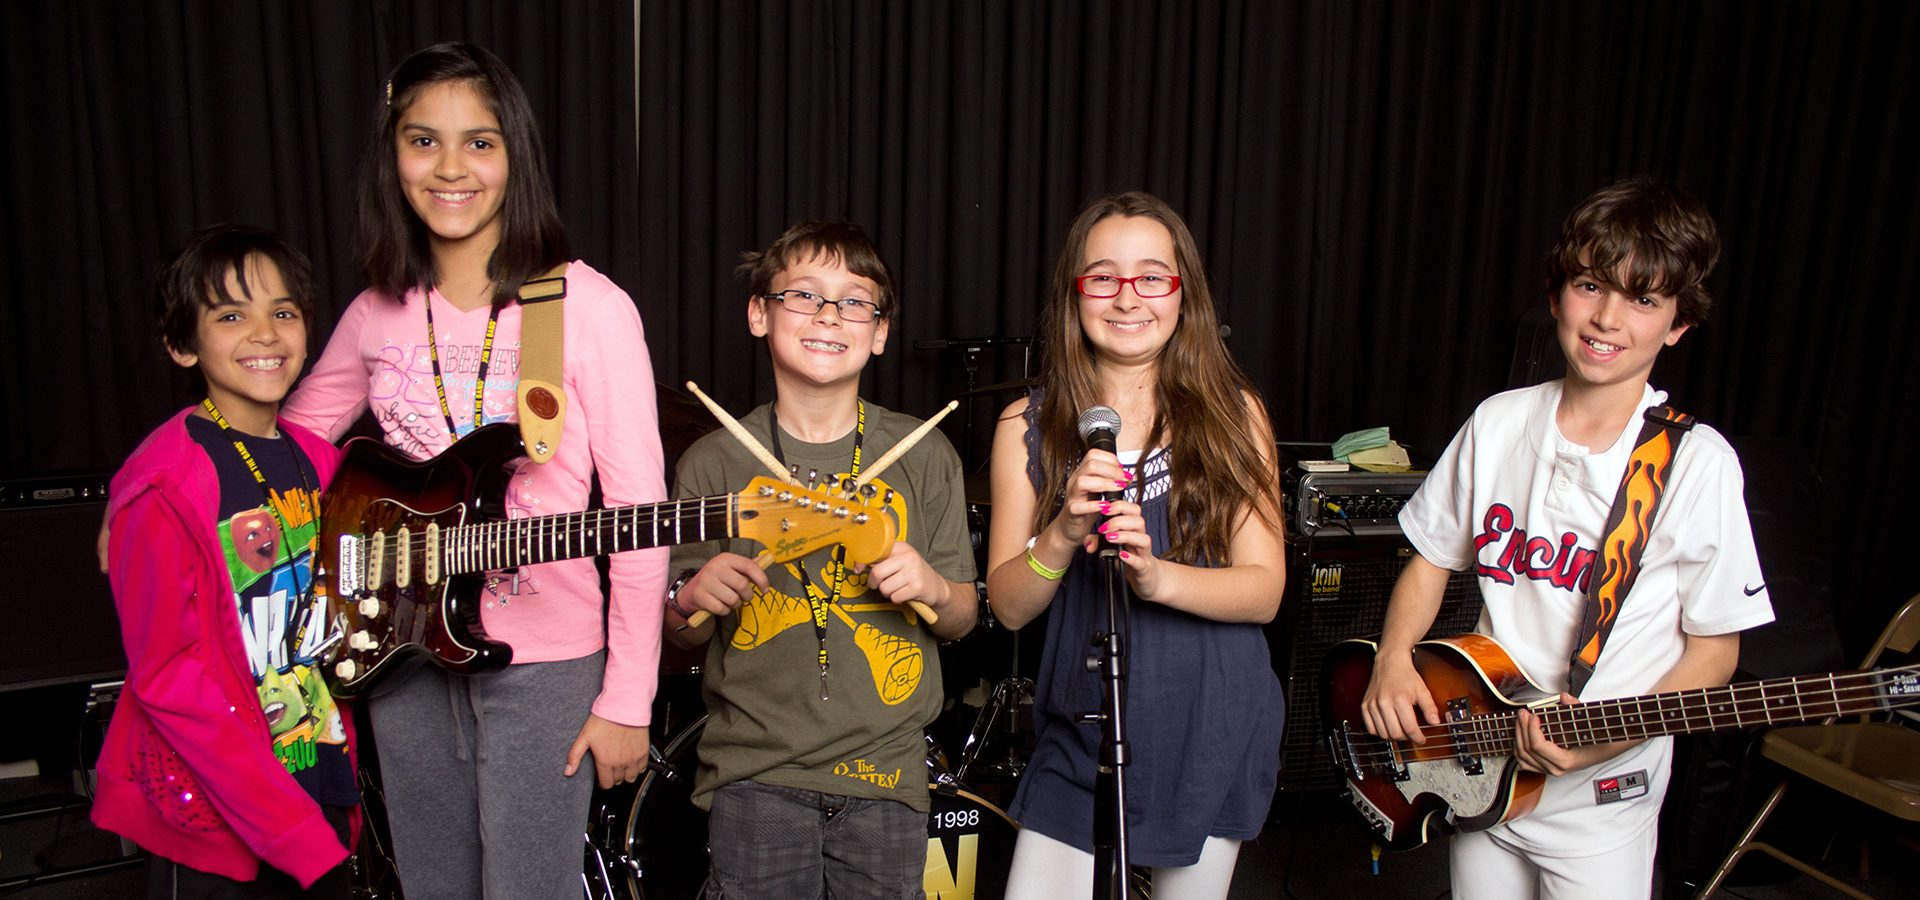 Songwriting Music Camp - Kids - Sherman Oaks, Los Angeles - Join The Band